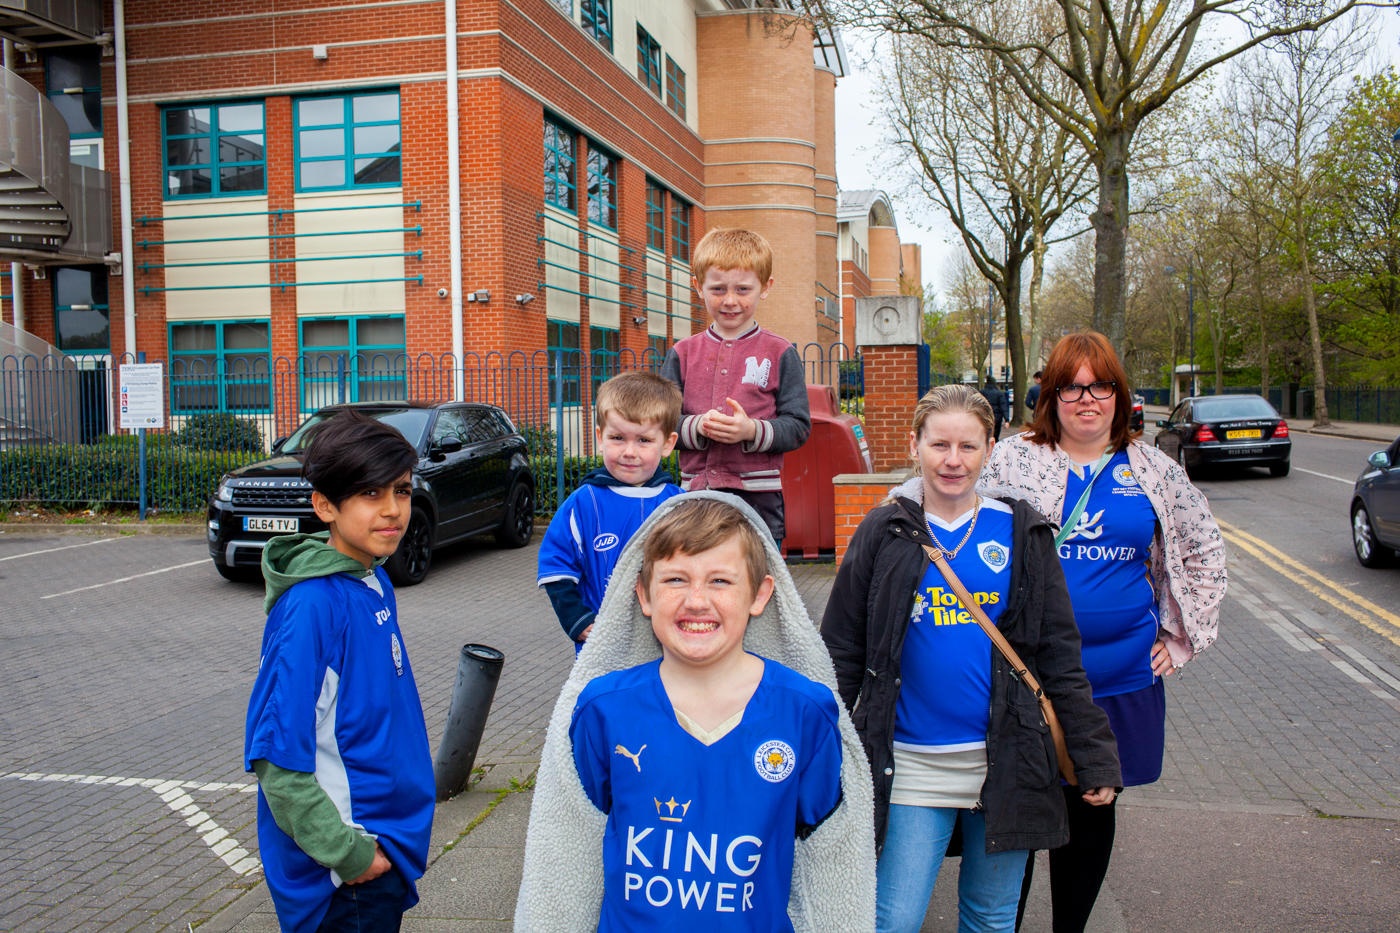 LEICESTER, UK MAY 2016Liz Atkins with her three children, Tyler 11 (front), Fidian 8 (back) and Aire 3 (middle) with friend Jessica Ray and Nima (far left) on their way to the Soar Point pub in Leicester to watch them play Manchester United on television.On the 2nd May 2016, Leicester City football club became champions of England for the first time in their 132 year history.Leicester has been dubbed as most multicultural diversified city in England, thanks to scores of people that have flocked the city and who have hailed from different parts of the world. According to the Leicester city council, the city has the highest number of immigrants who have sought both temporary and permanent residence in England. Majority of these immigrants are people who have left their home countries in pursuit of job opportunities in England.  Photo byPeter Dench/Getty Images Assignment forESPN